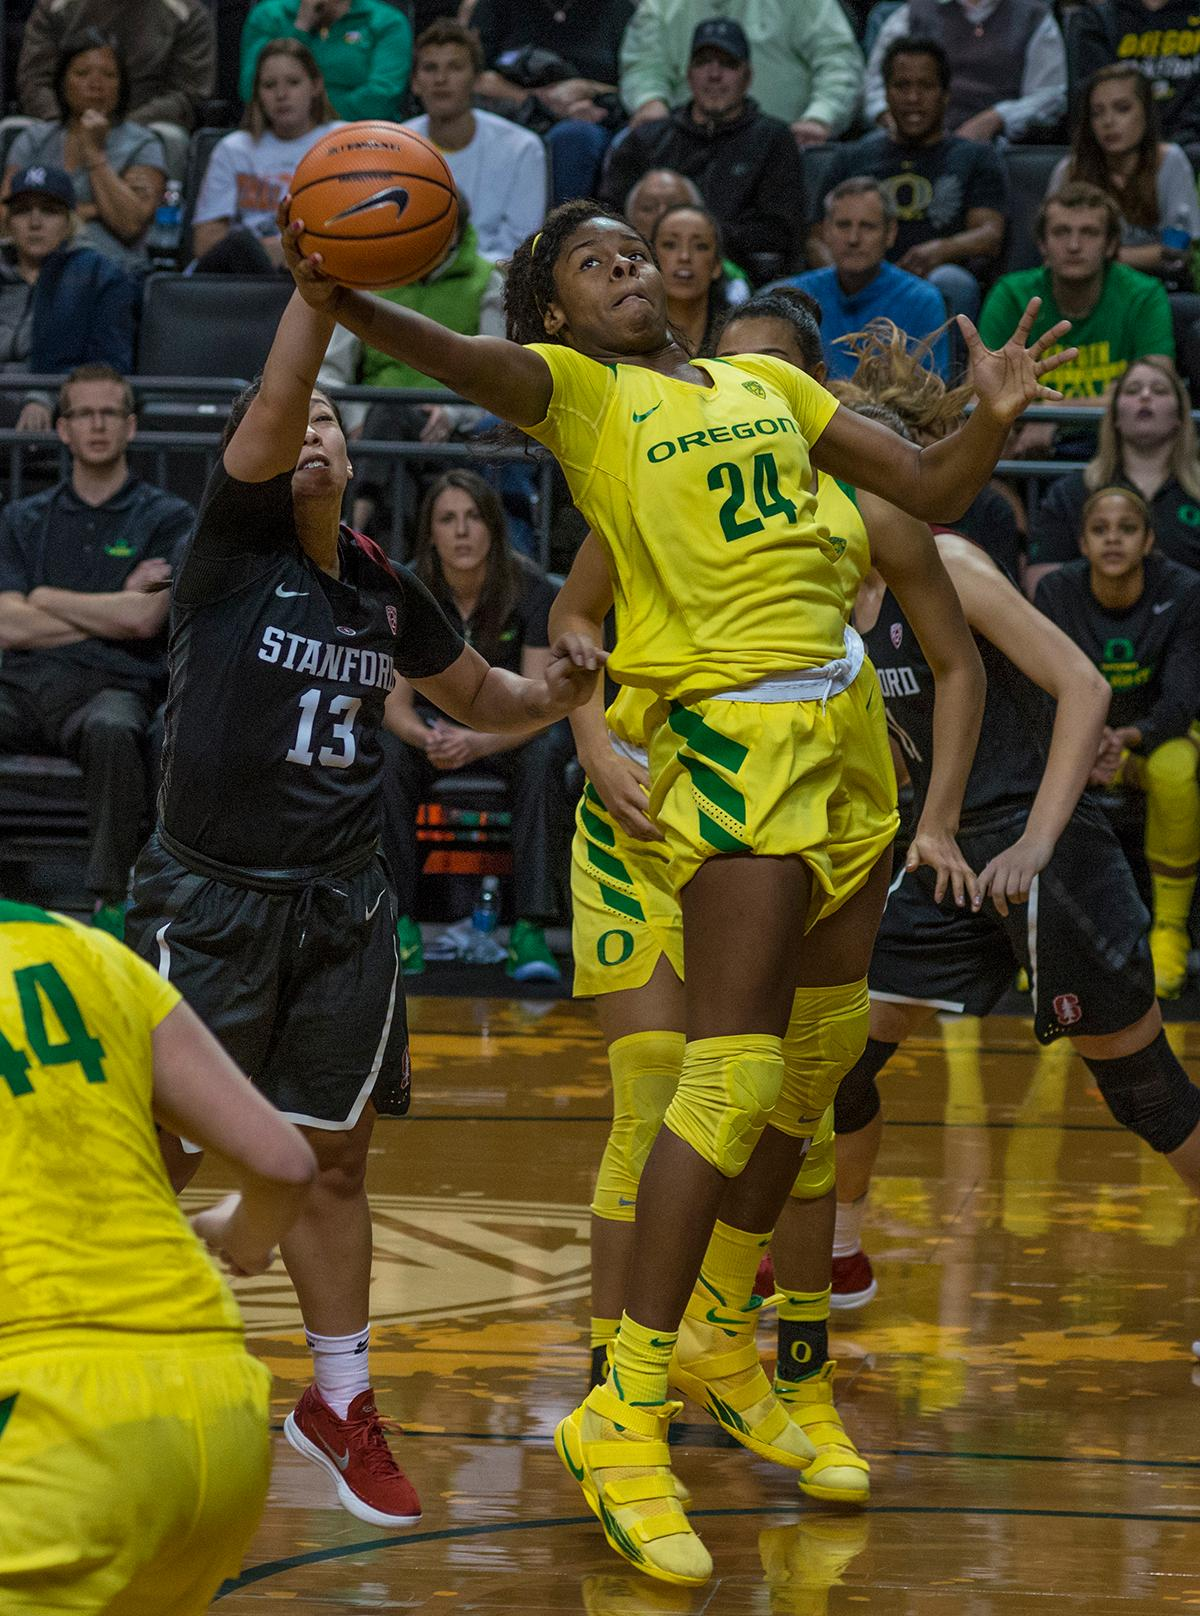 Stanford Cardinal Marta Sniezek (#13) tussles with Oregon Ducks Ruthy Hebard (#24) for control of a rebound. The Stanford Cardinal defeated the Oregon Ducks 78-65 on Sunday afternoon at Matthew Knight Arena. Stanford is now 10-2 in conference play and with this loss the Ducks drop to 10-2. Leading the Stanford Cardinal was Brittany McPhee with 33 points, Alanna Smith with 14 points, and Kiana Williams with 14 points. For the Ducks Sabrina Ionescu led with 22 points, Ruthy Hebard added 16 points, and Satou Sabally put in 14 points. Photo by Dan Morrison, Oregon News Lab